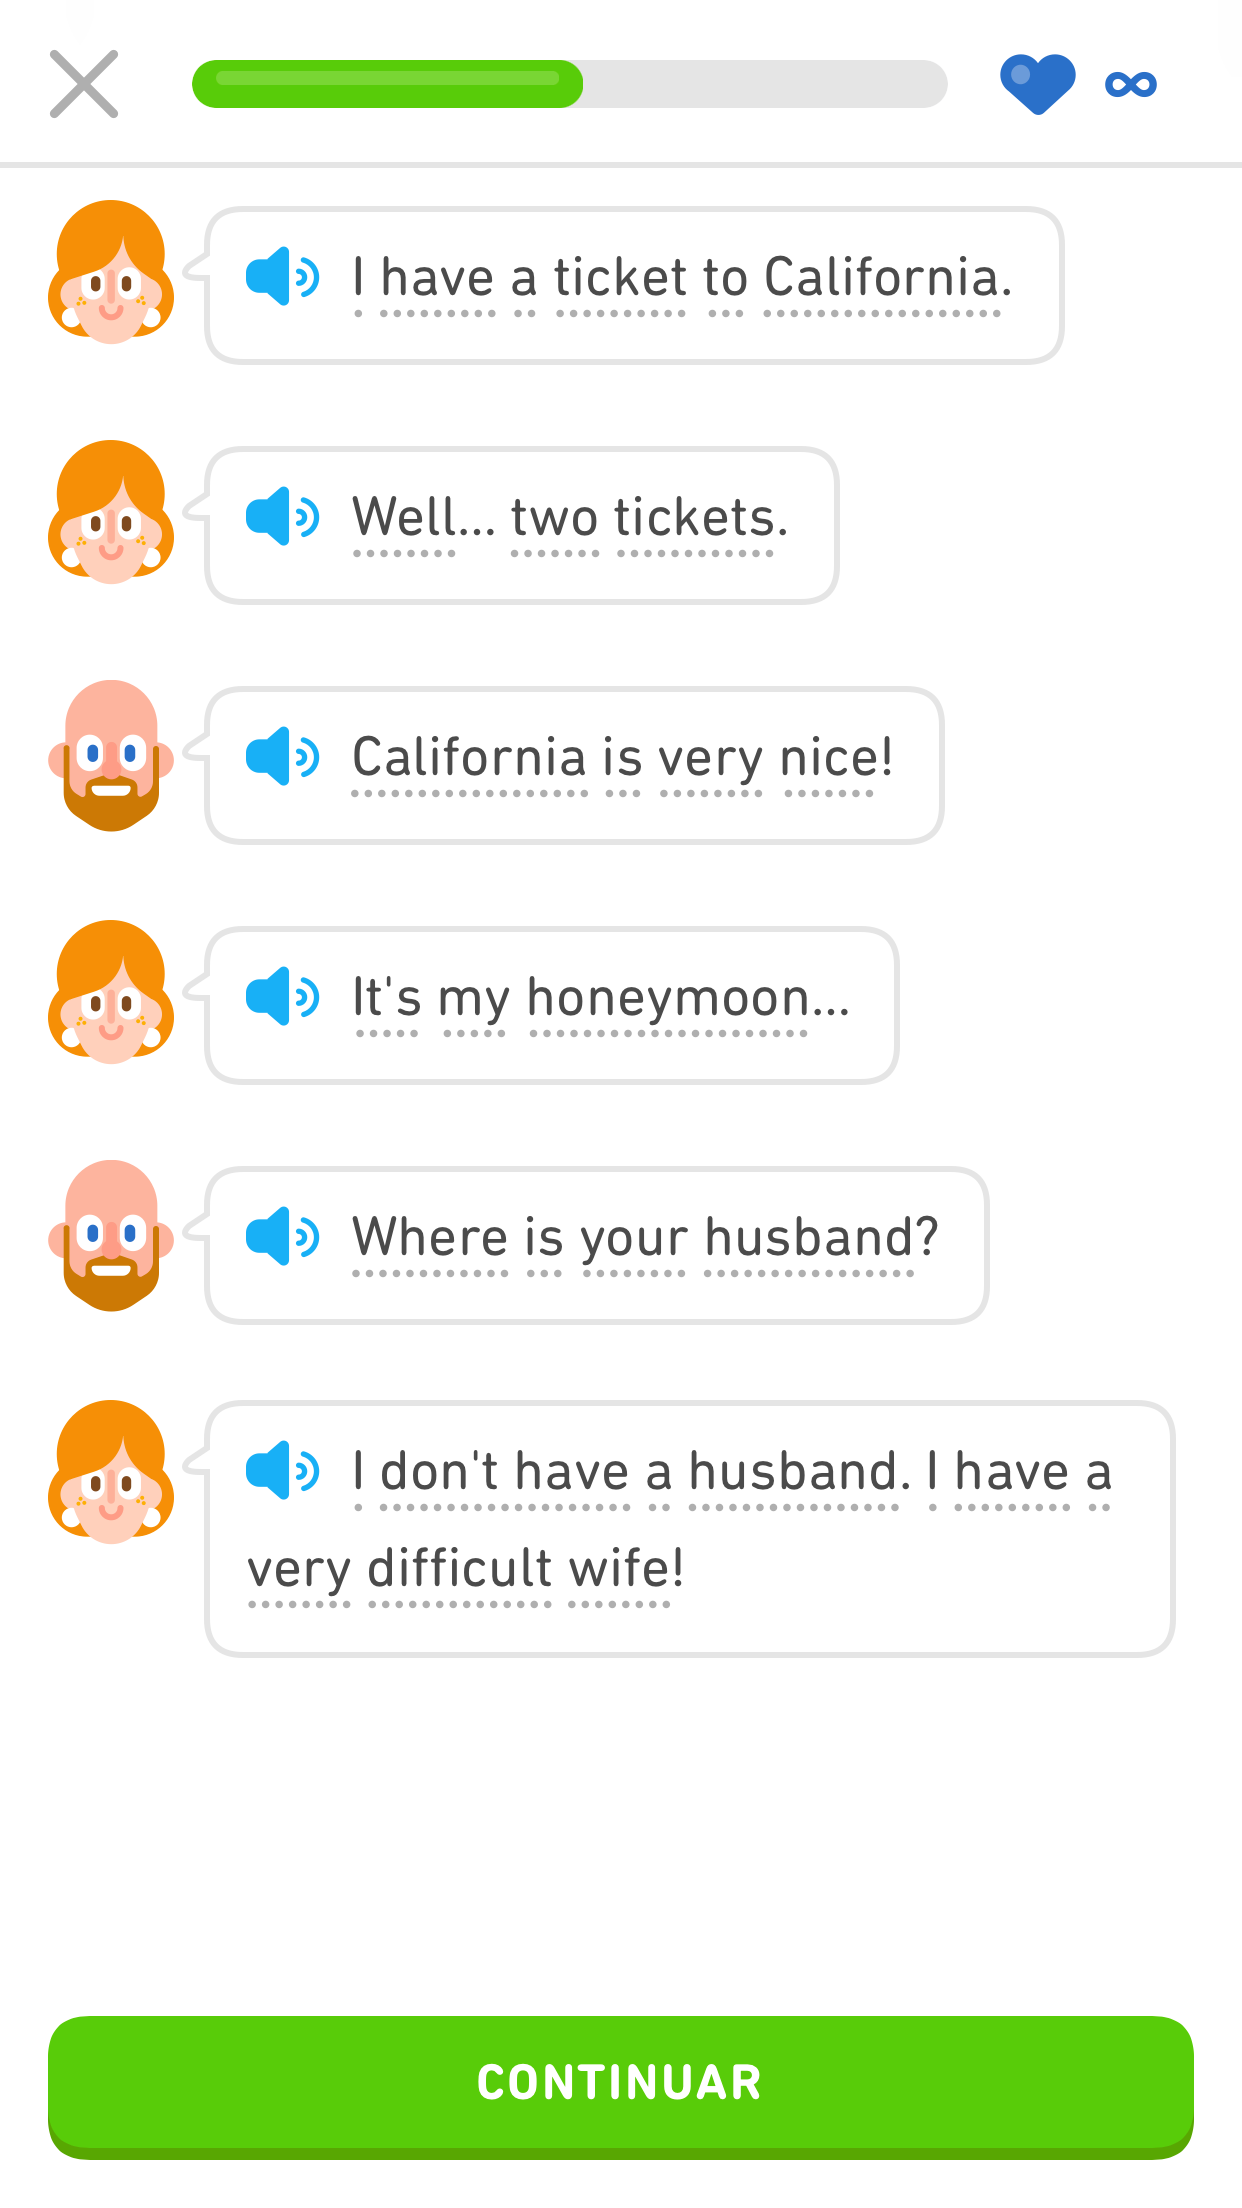 """Screenshot of a dialog in Duolingo Stories between a taxi driver and a woman who just entered the cab. The woman says, """"I have a ticke to California. Well...two tickets."""" The taxi driver says, """"California is very nice!"""" The woman says, """"It's my honeymoon..."""" The taxi driver says, """"Where is your husband?"""" The woman says, """"I don't have a husband. I have a very difficult wife!"""""""